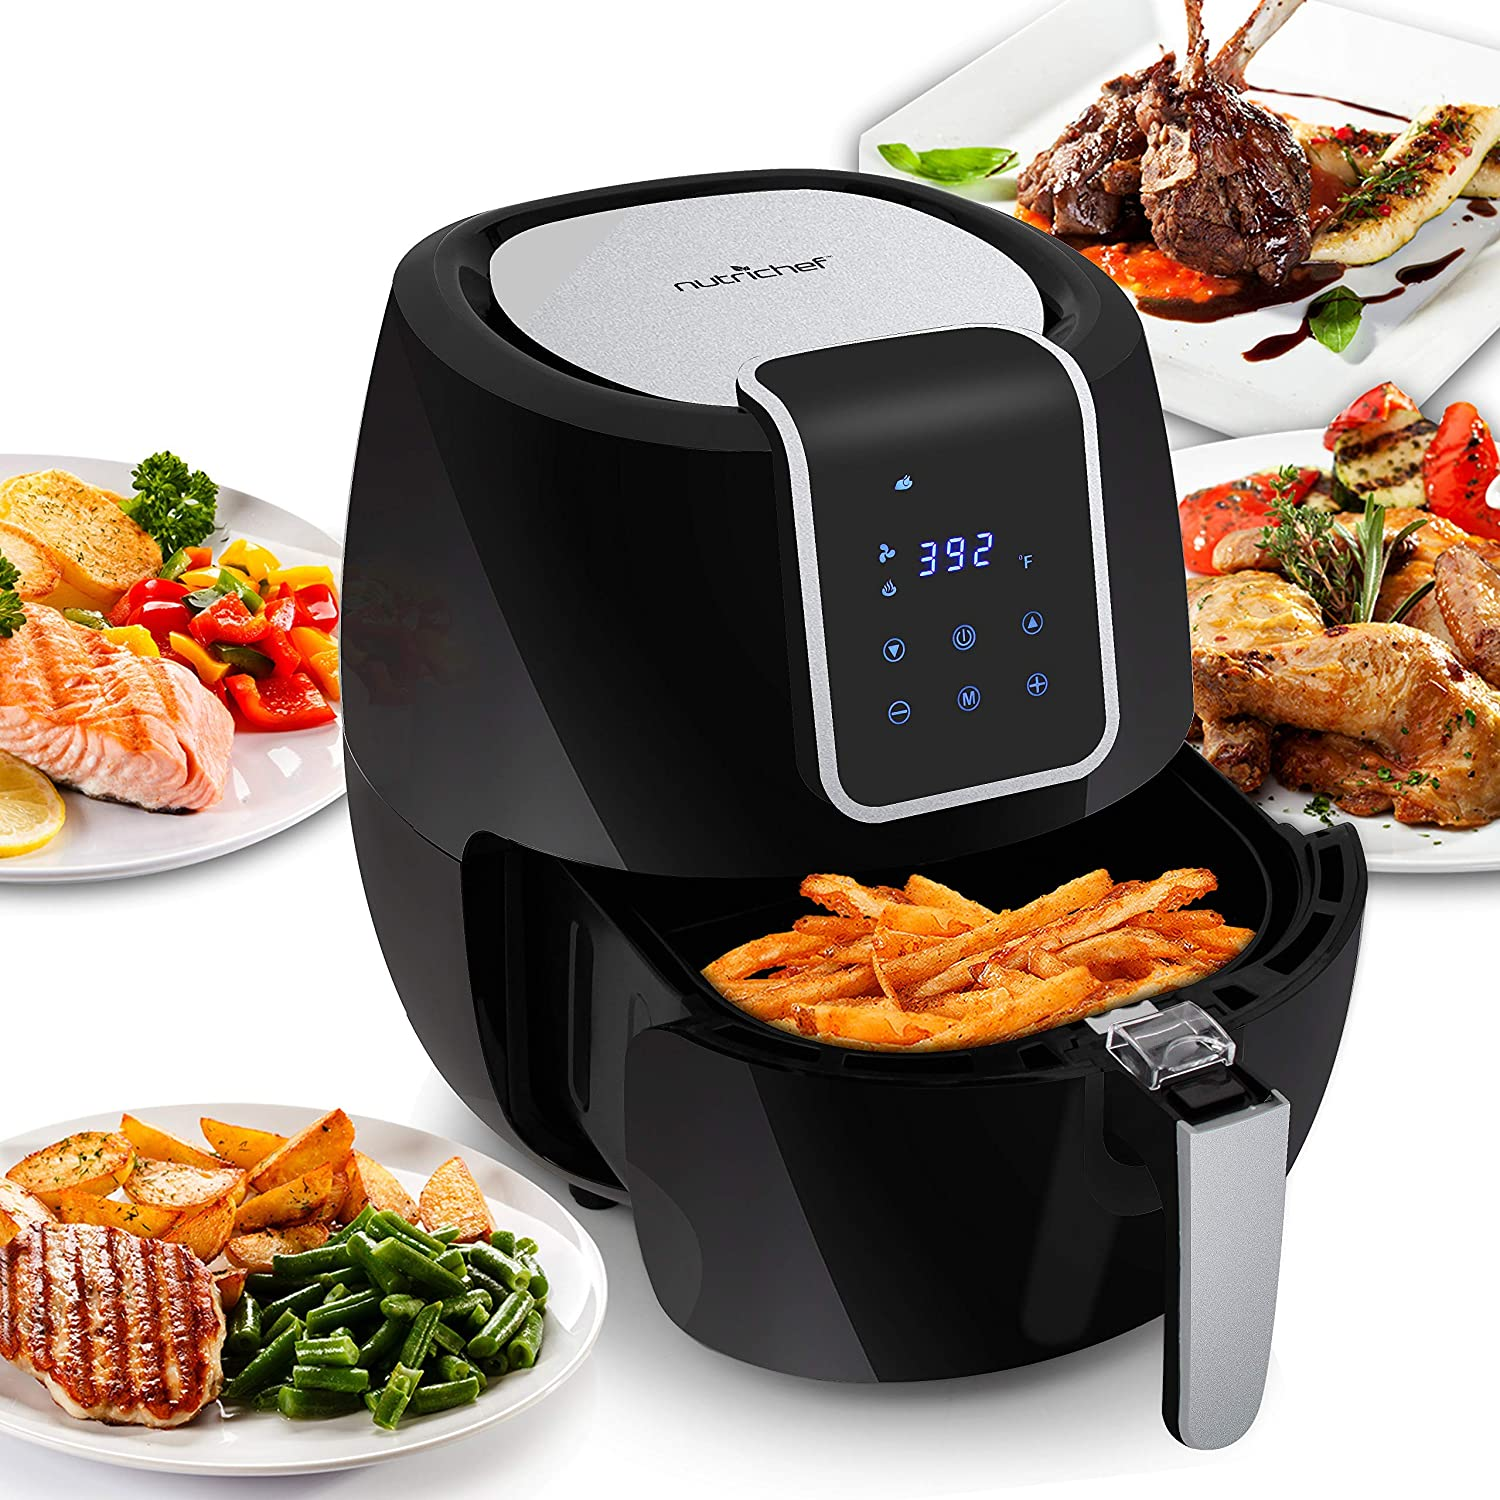 NutriChef Digital Air Fryer 5.6 Qt XXL - 1800 Watt Power Electric Oilless Kitchen Hot Air Frying Convection Multi Cooker, Non Stick Fry Basket - Digital Cooking Time Setting options, Black- PKAIRFR65